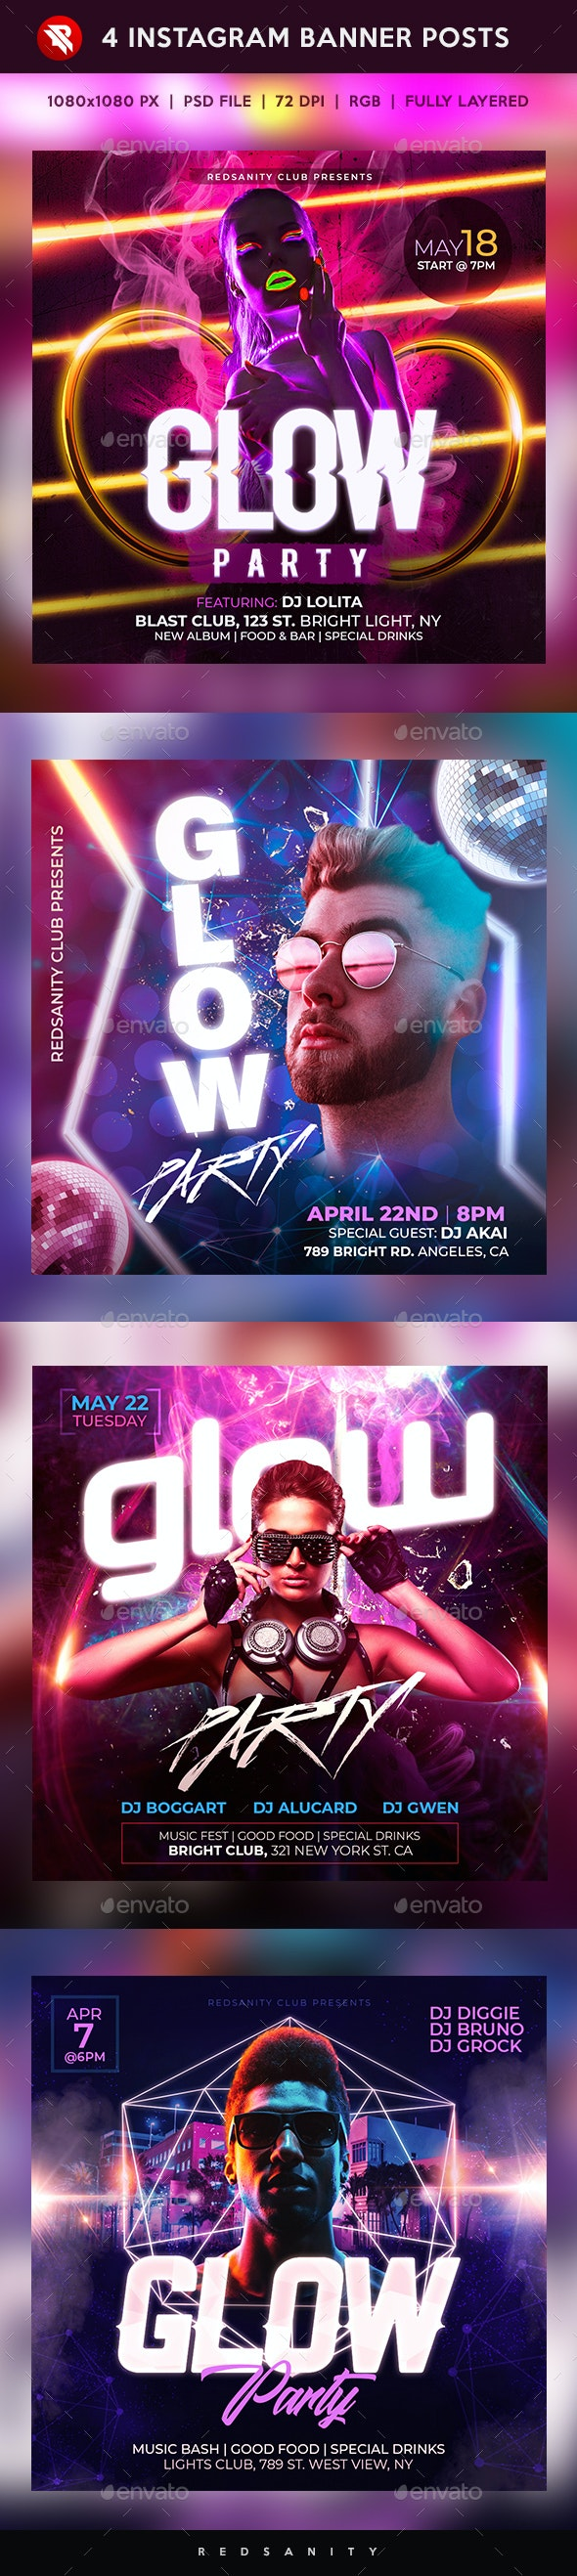 Glow Party Instagram Banner Posts - Social Media Web Elements